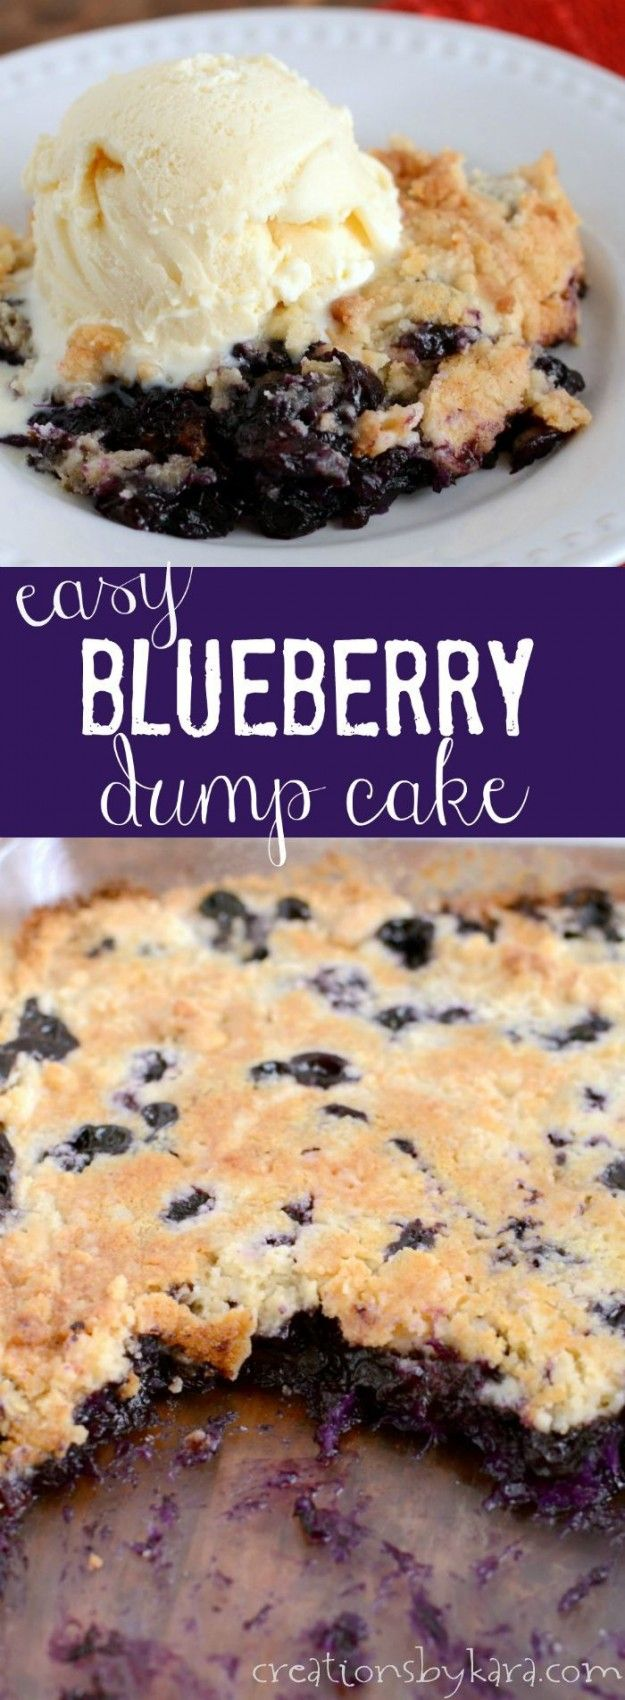 Bisquick Blueberry Cake Recipes